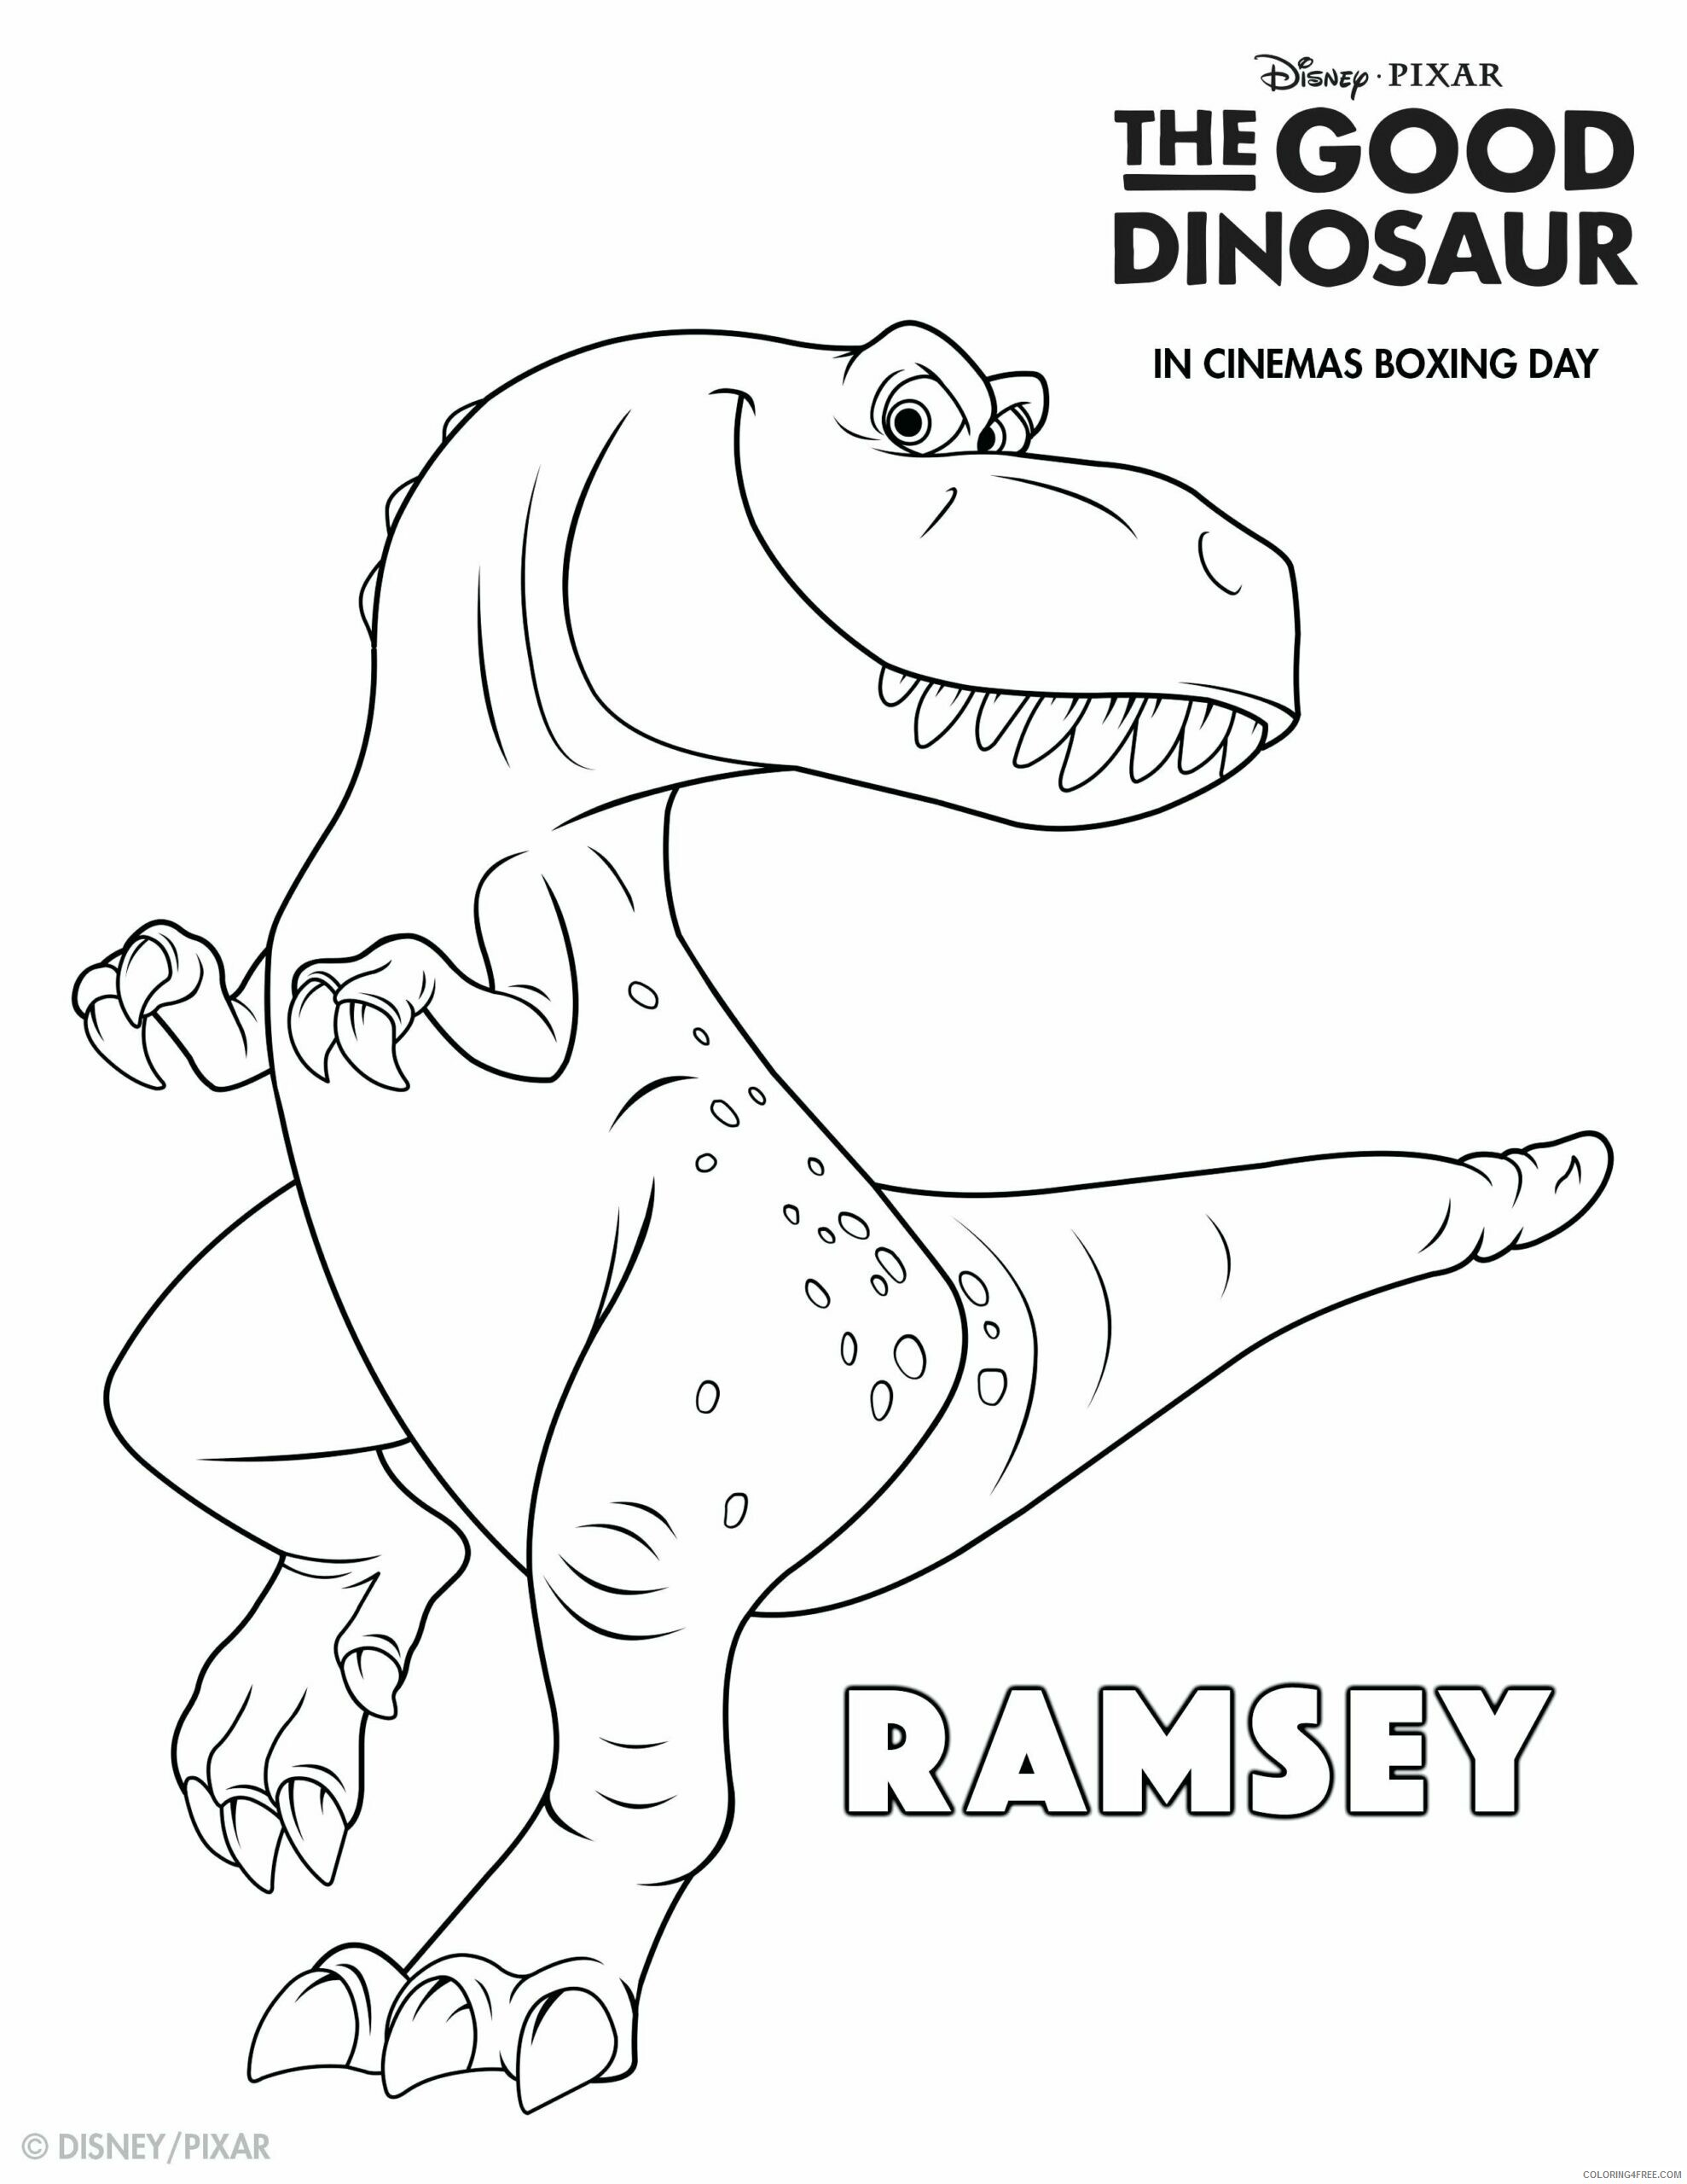 The Good Dinosaur Coloring Pages TV Film Ramsey Printable 2020 08819 Coloring4free